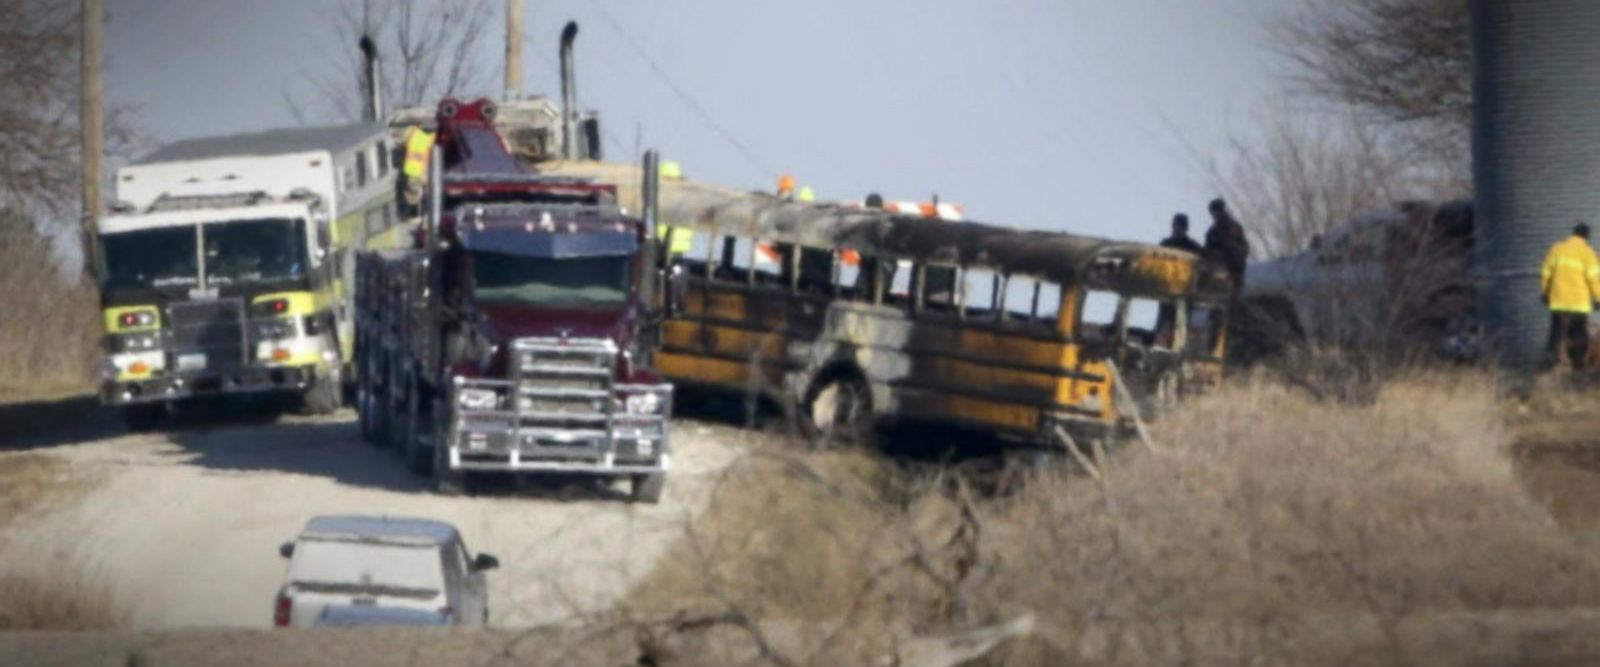 VIDEO: The incident occurred Tuesday morning in the farm town of Oakland as the bus backed out of a driveway and landed in a ditch where it caught fire, Pottawattamie County officials said.